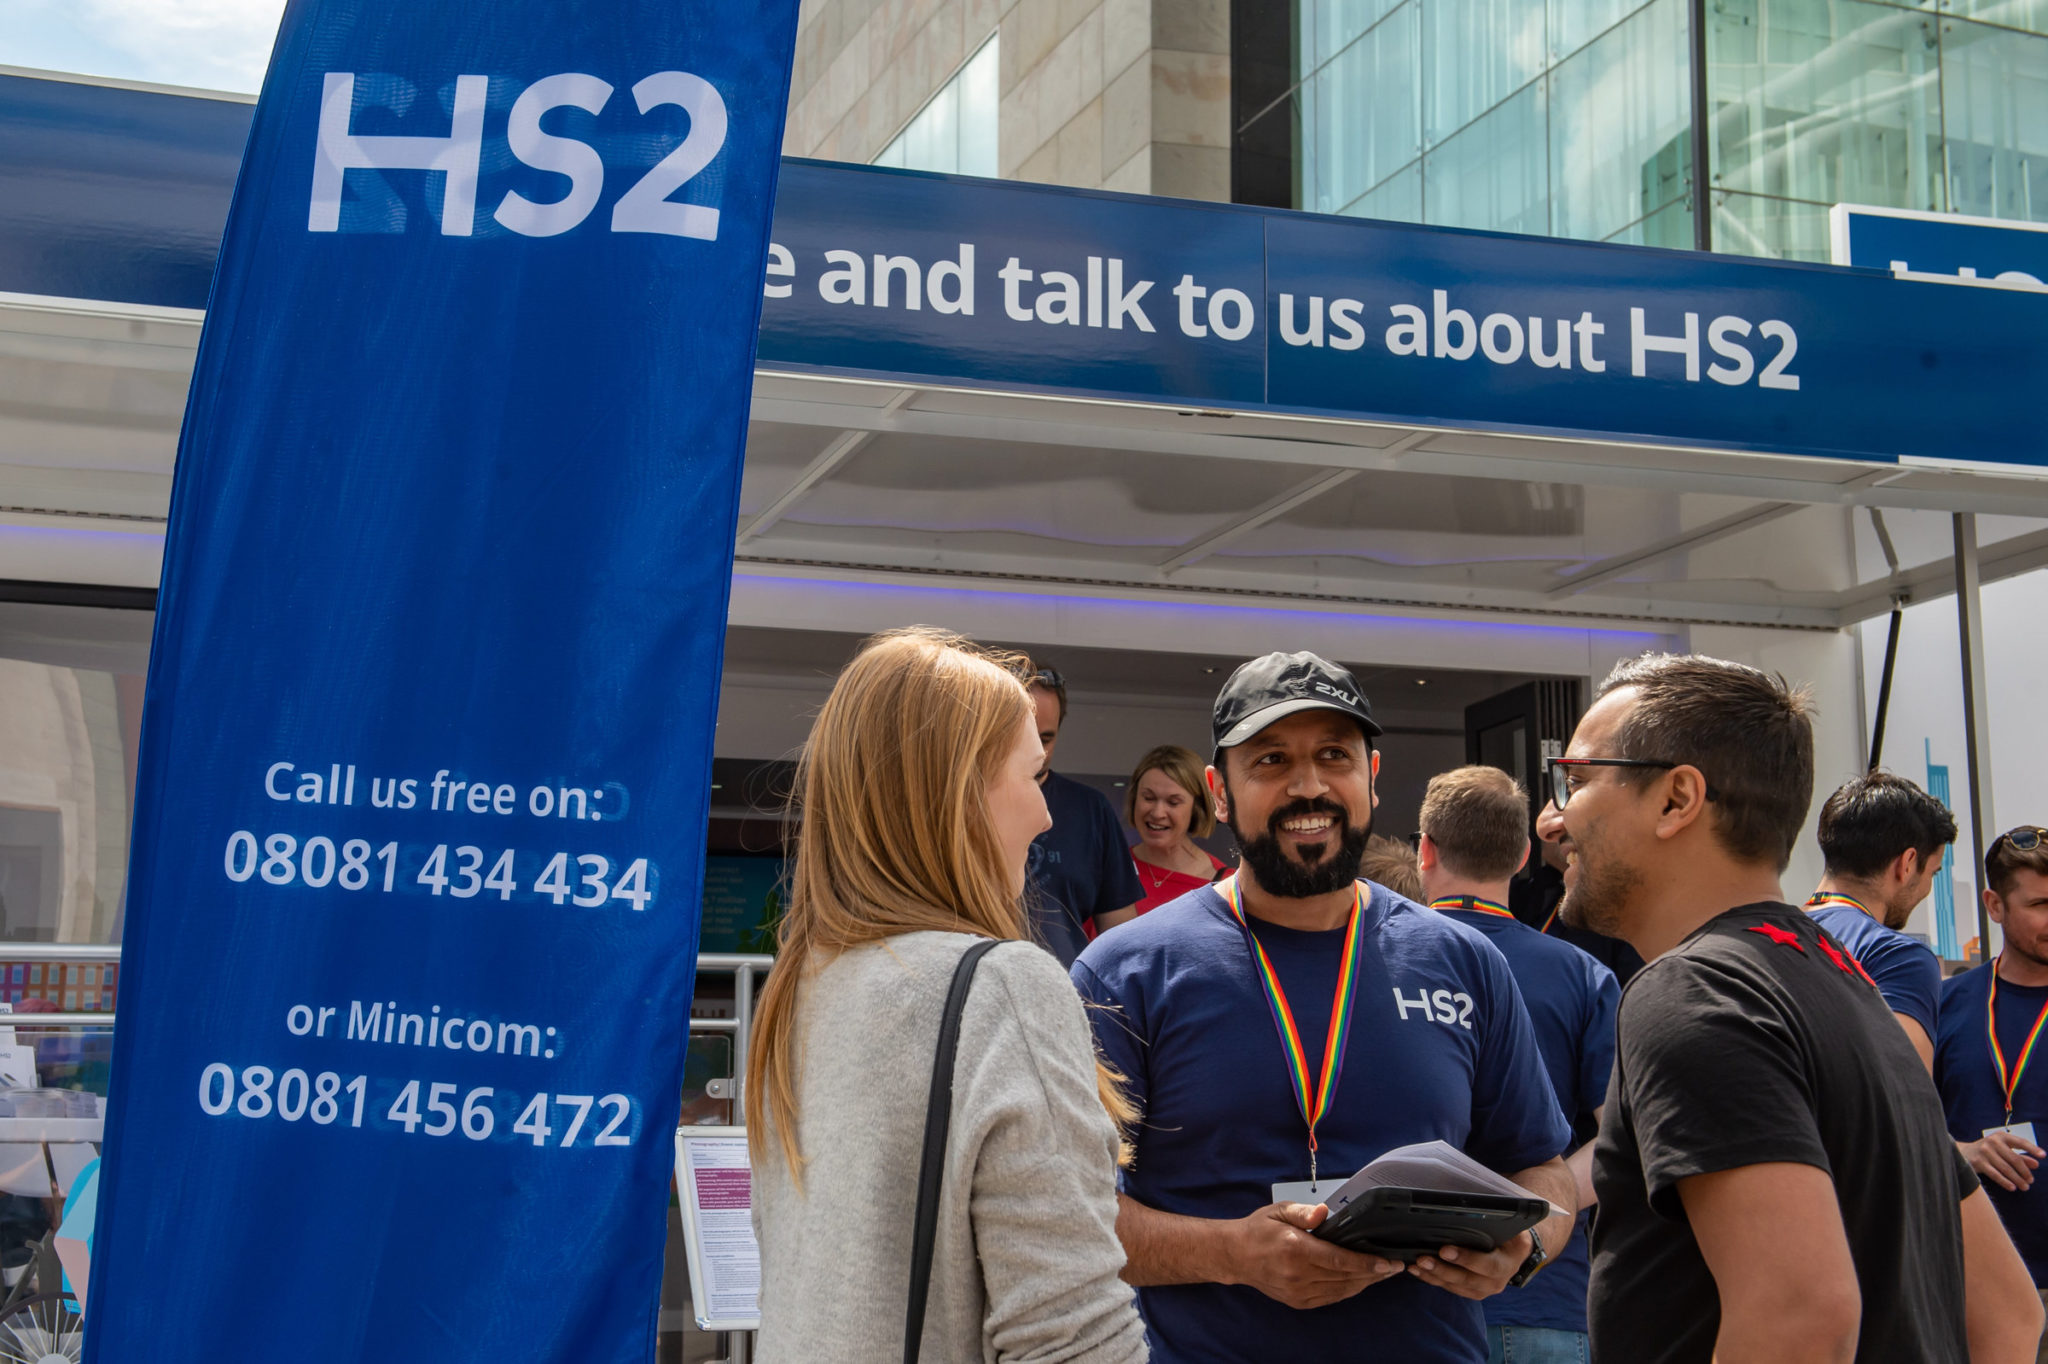 The HS2 Community Engagement trailer at Birmingham Pride